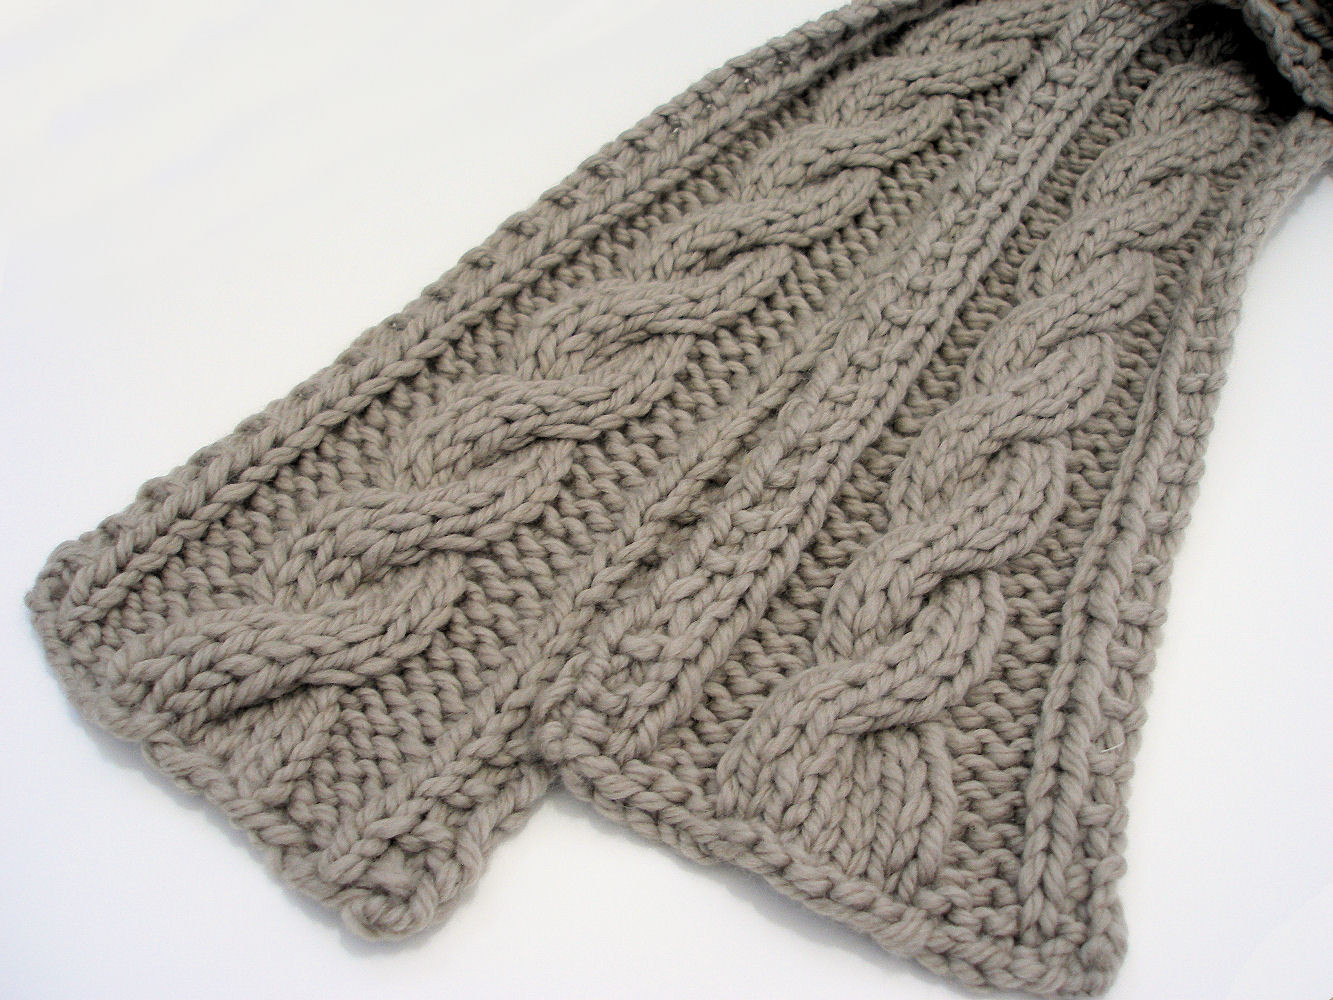 Crochet Cable Scarf Elegant Crochet Cable Stitch Scarf Pattern Of Incredible 40 Photos Crochet Cable Scarf